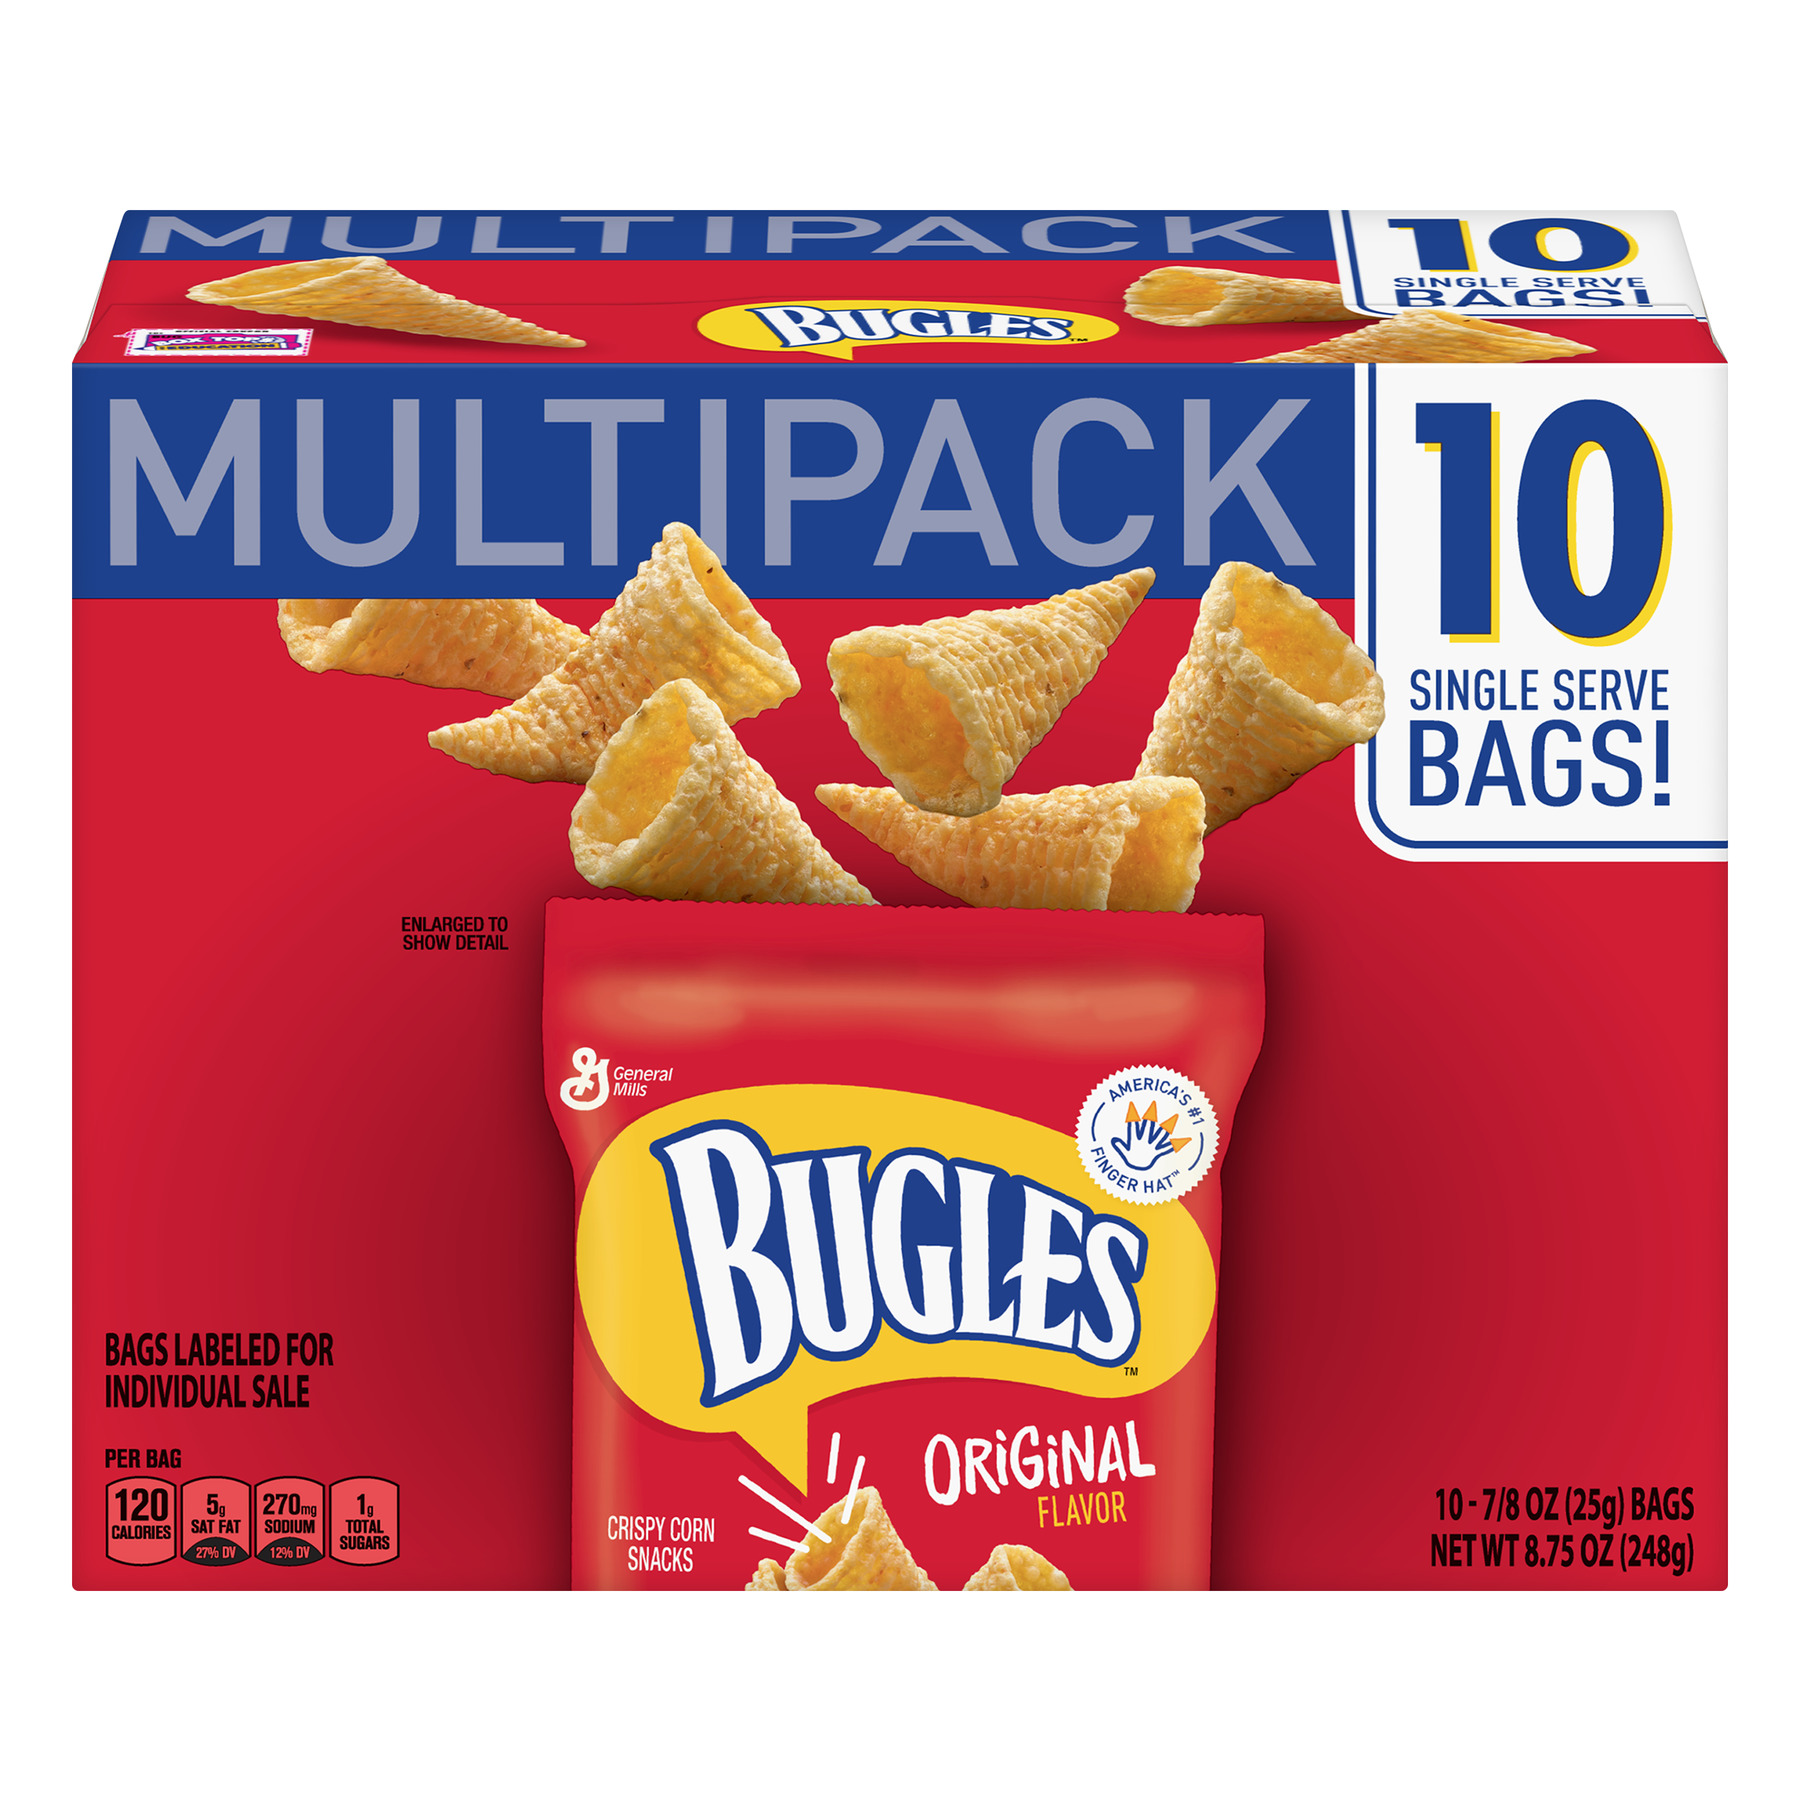 Bugles Original Crispy Corn Snacks 10 Bag Mulitpack, 8.75 oz